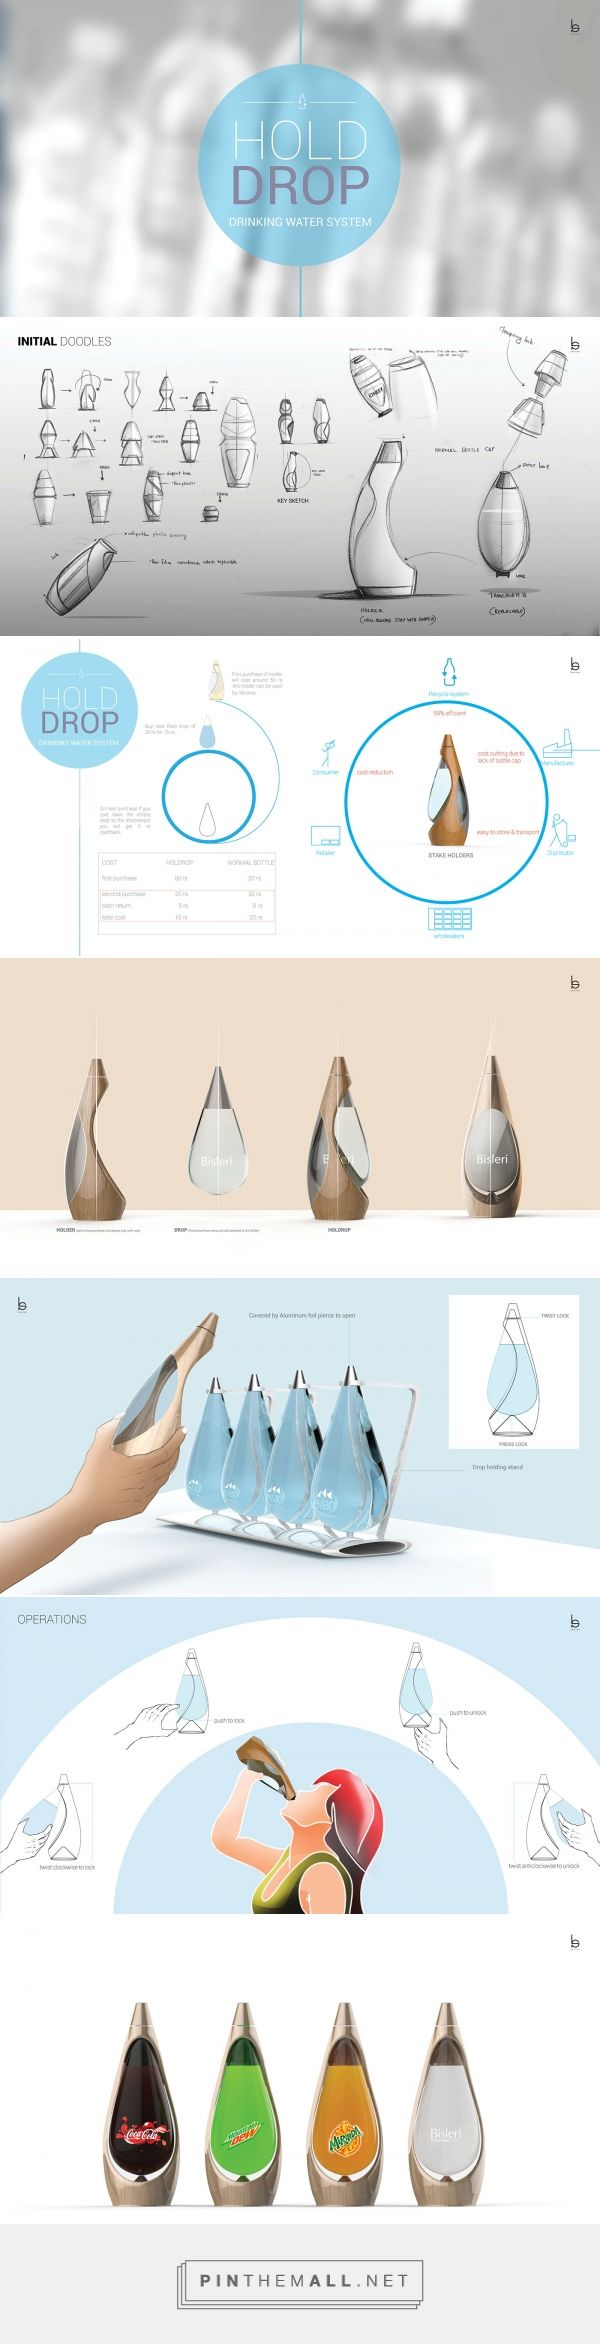 Hold Drop drinking system by Bonny Sunny. Source: Behance. Pin curated by #SFields99 #packaging #design #structural